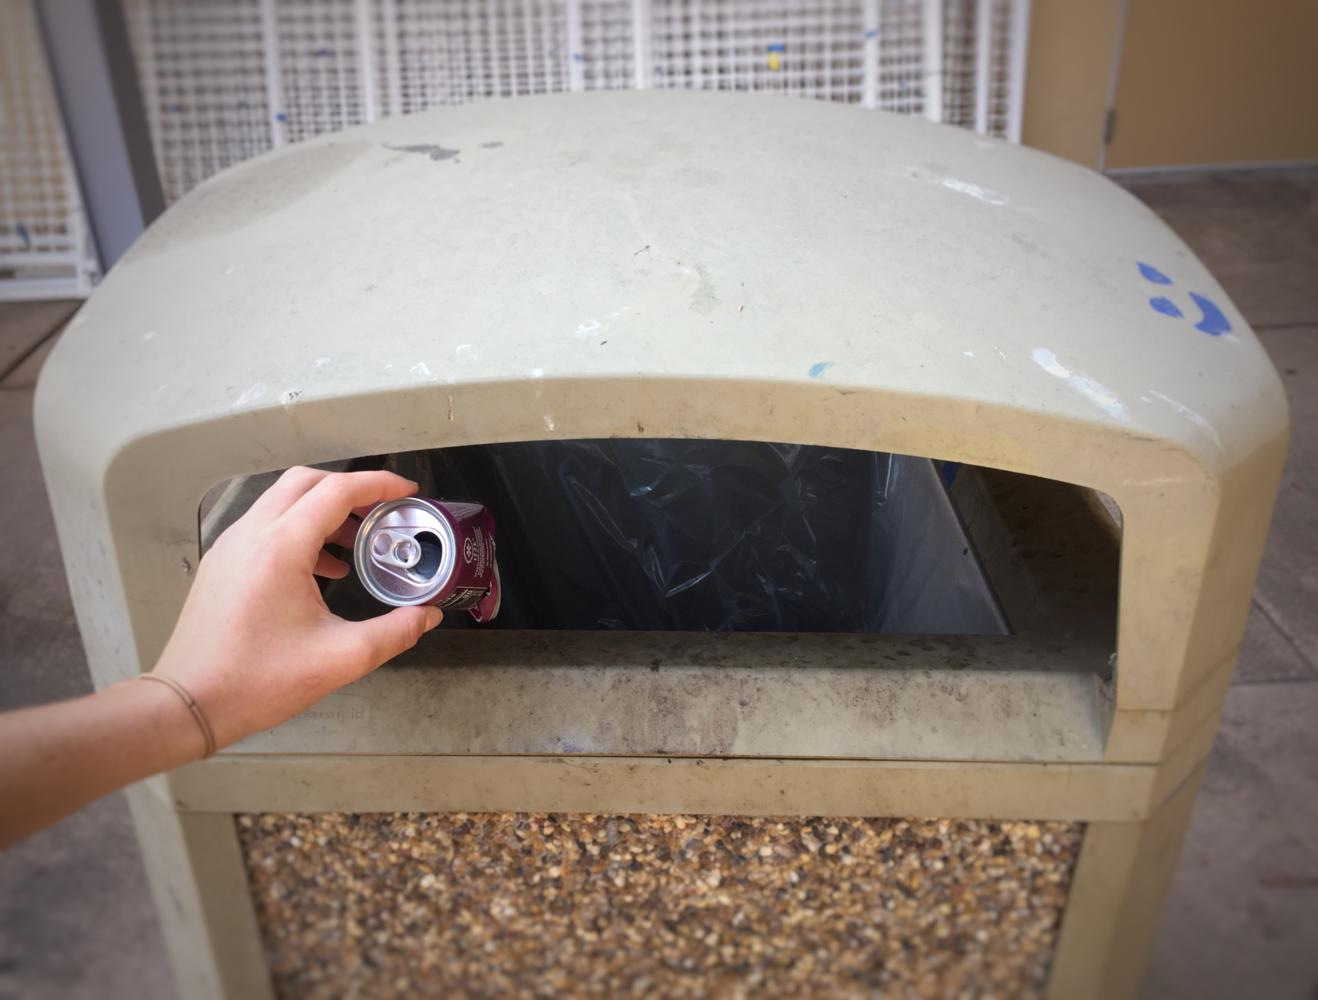 During lunch, Sienna Diehl, a sophomore, throws away her empty soda bottle in the trash can. Soda bottles should be thrown in the recycling bin since they're made of aluminum.